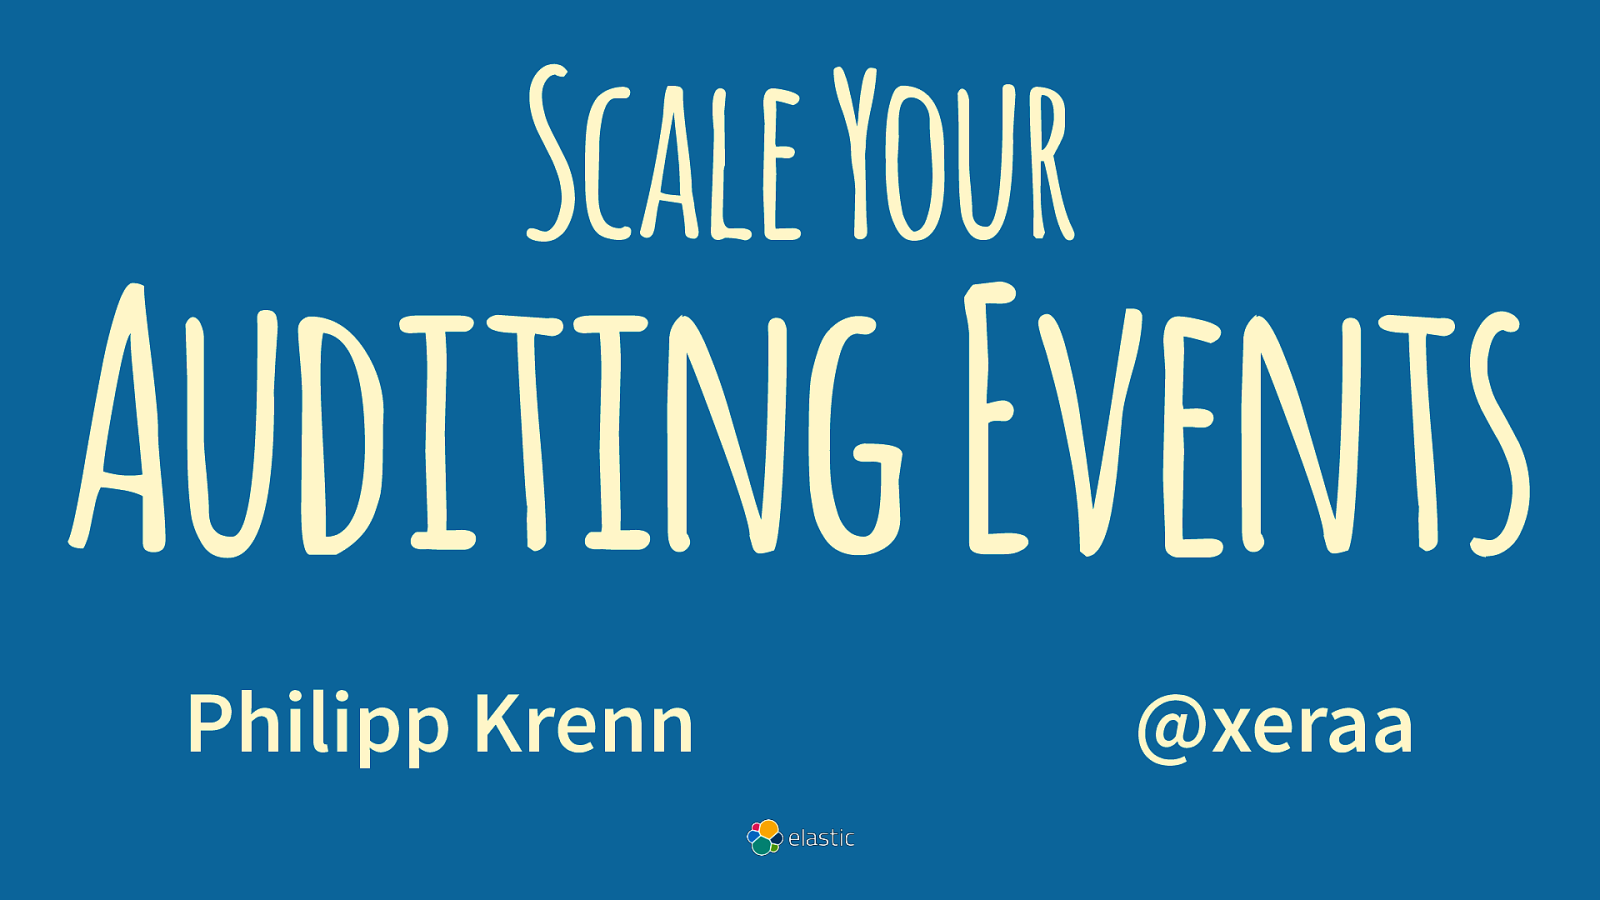 Scale Your Auditing Events